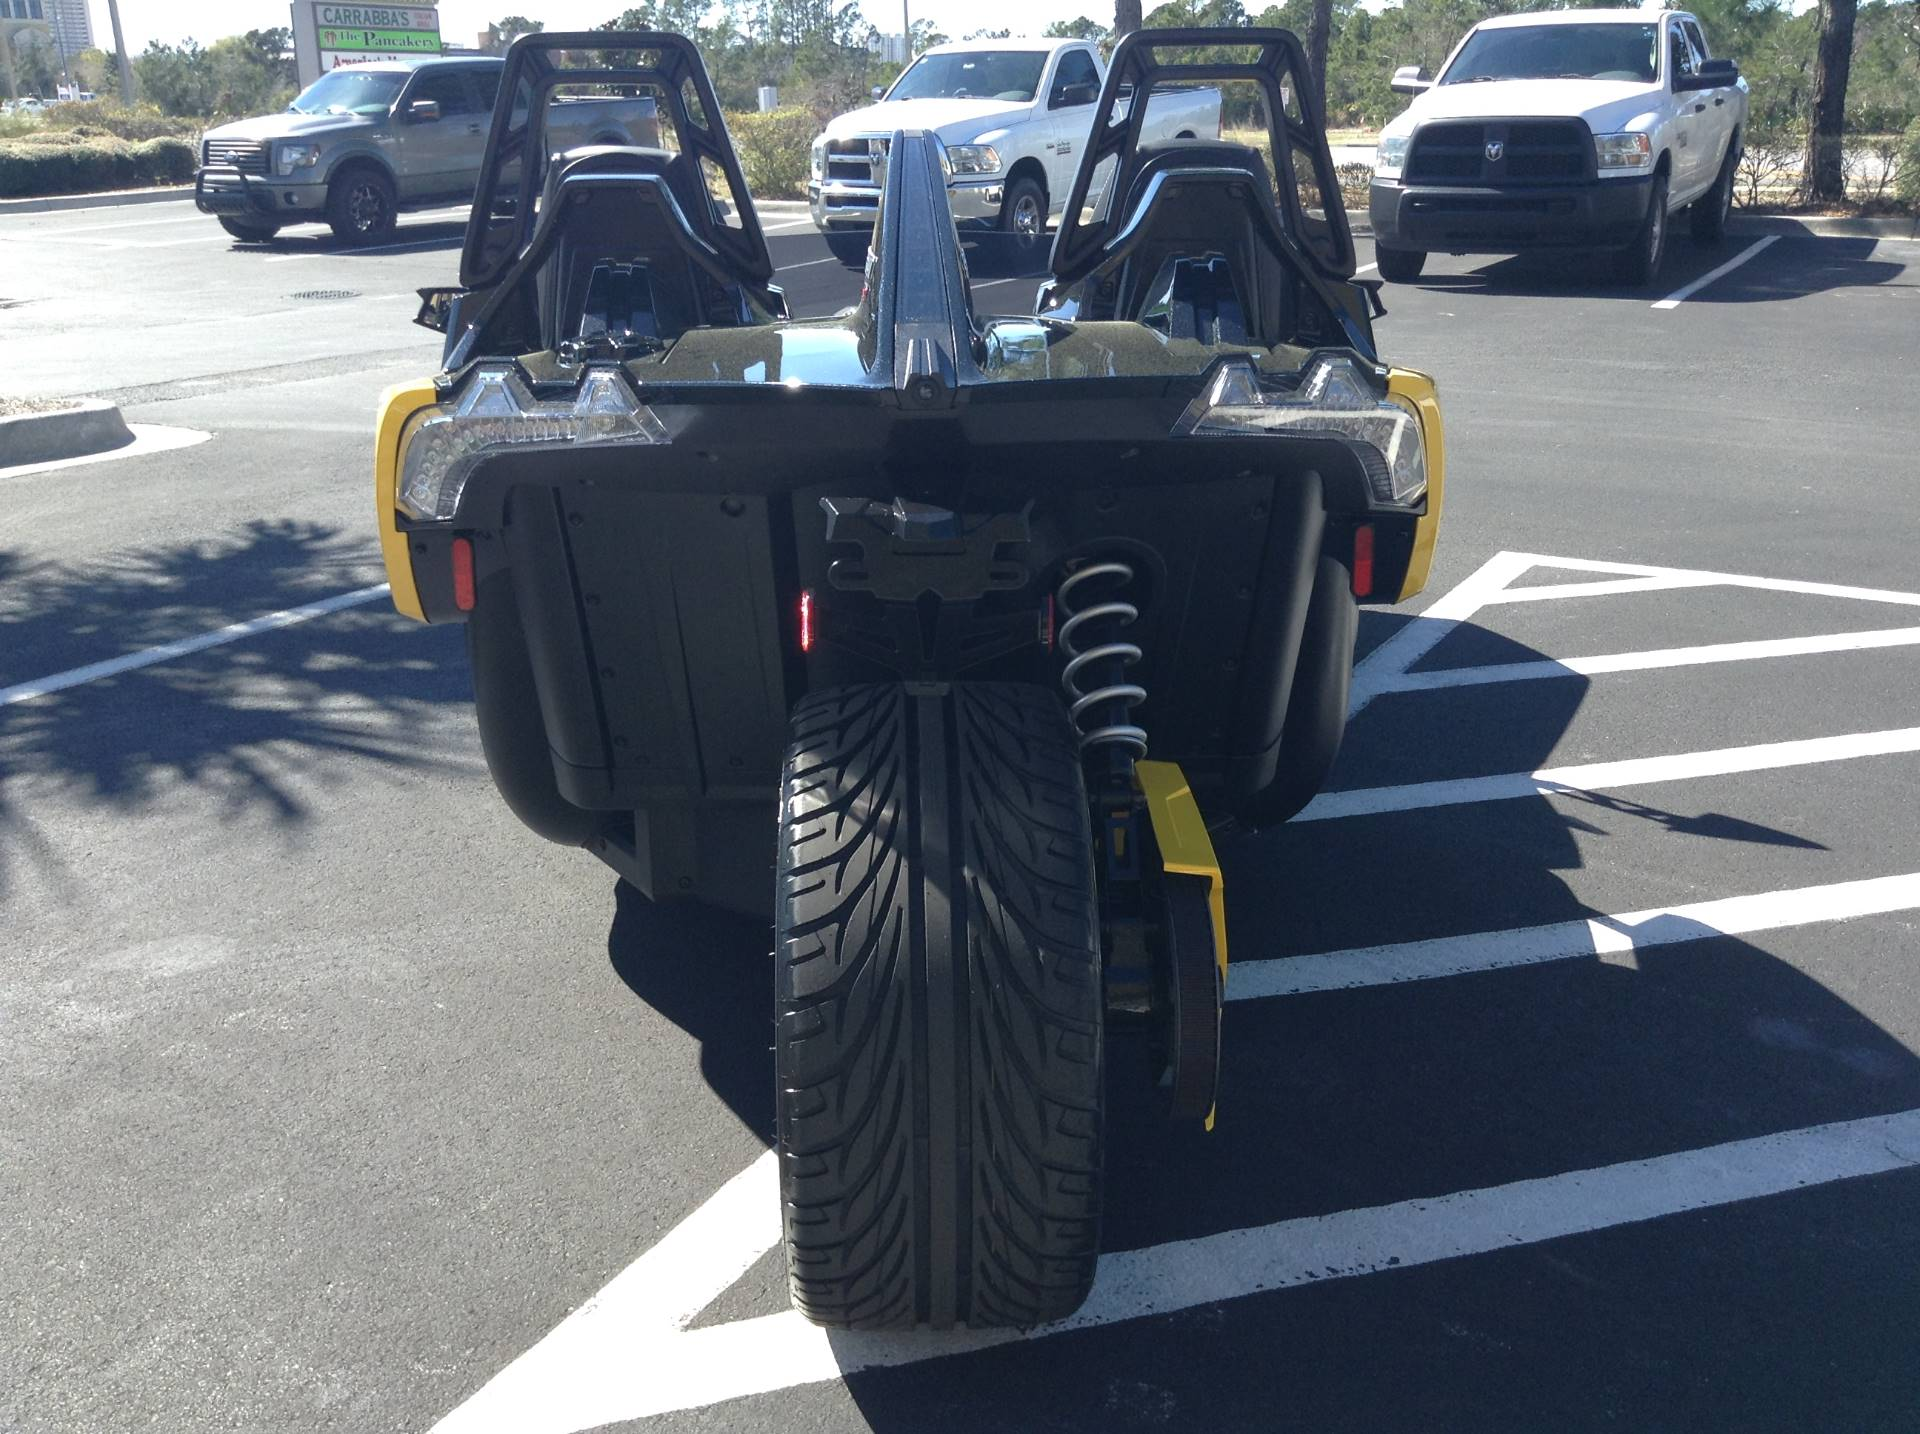 2019 Polaris SLINGSHOT SLR ICON SERIES in Panama City Beach, Florida